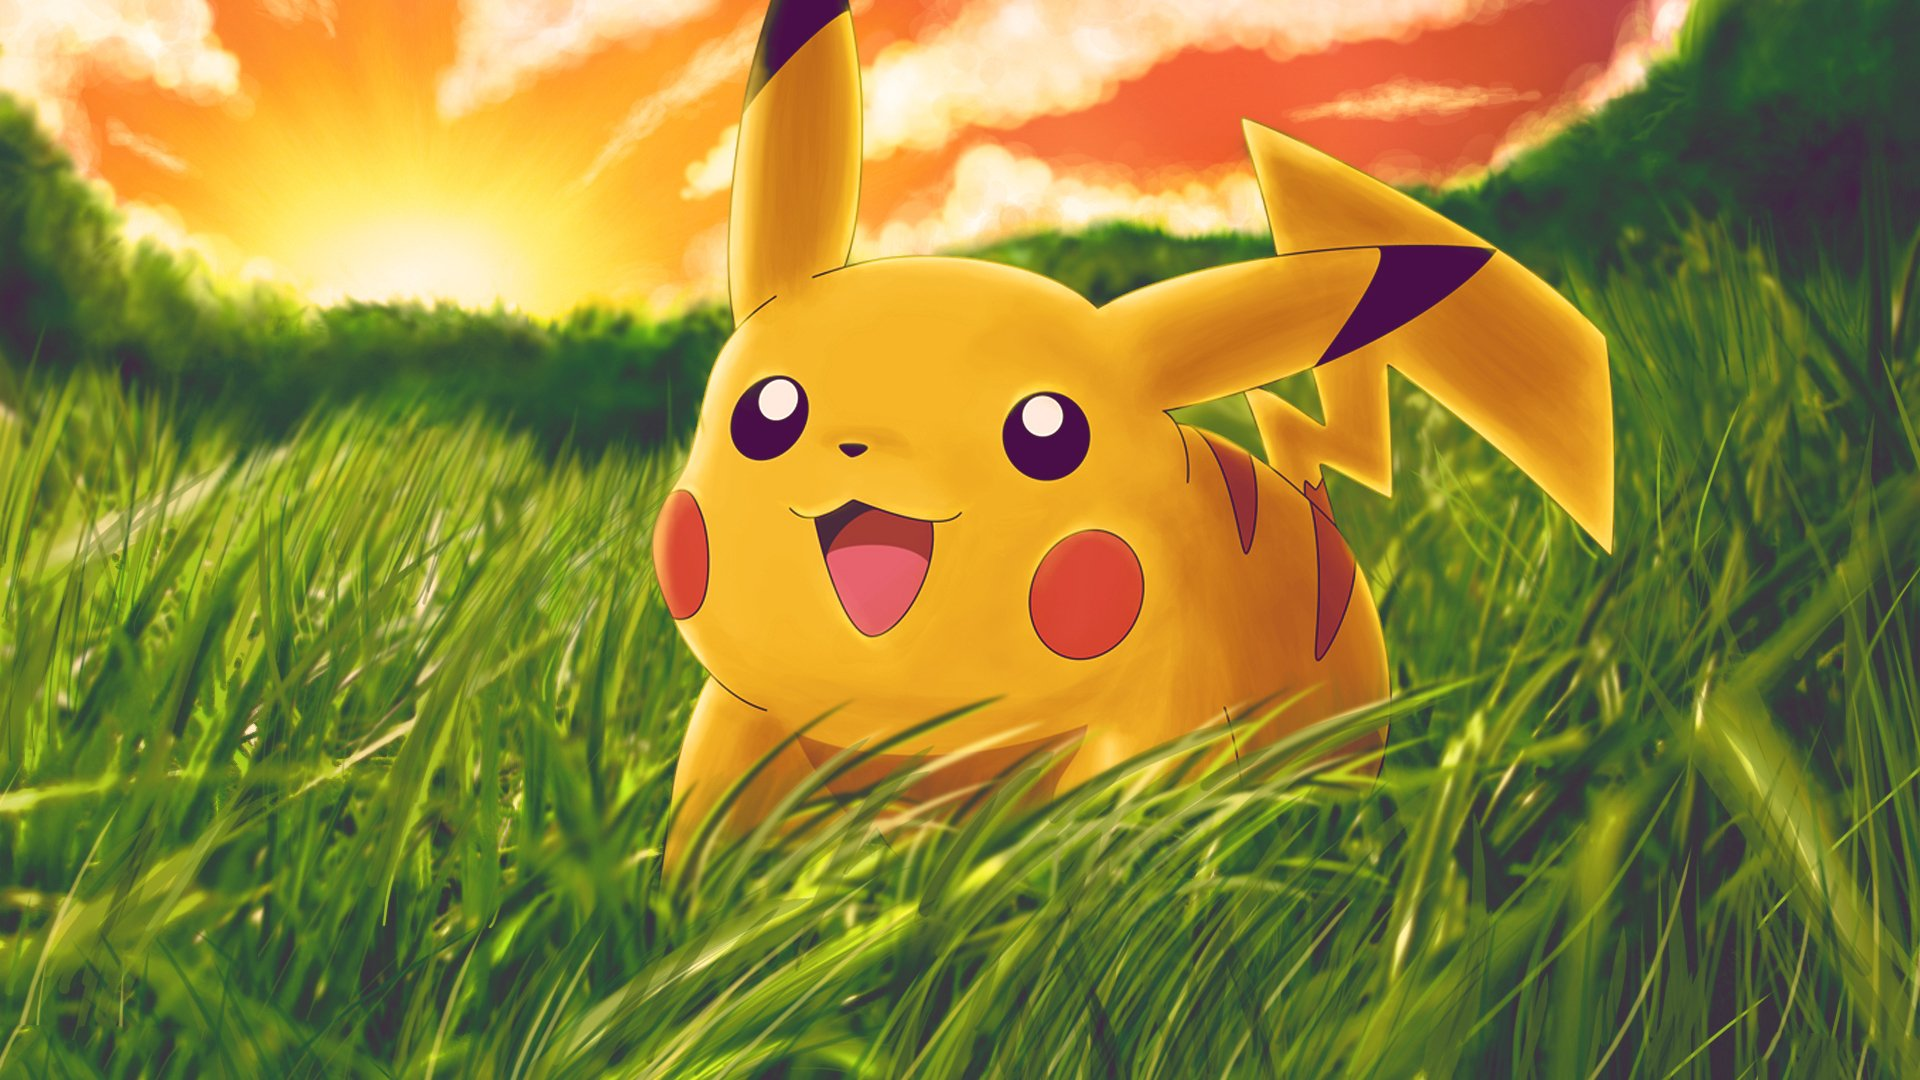 304 Pikachu Hd Wallpapers Background Images Wallpaper Abyss